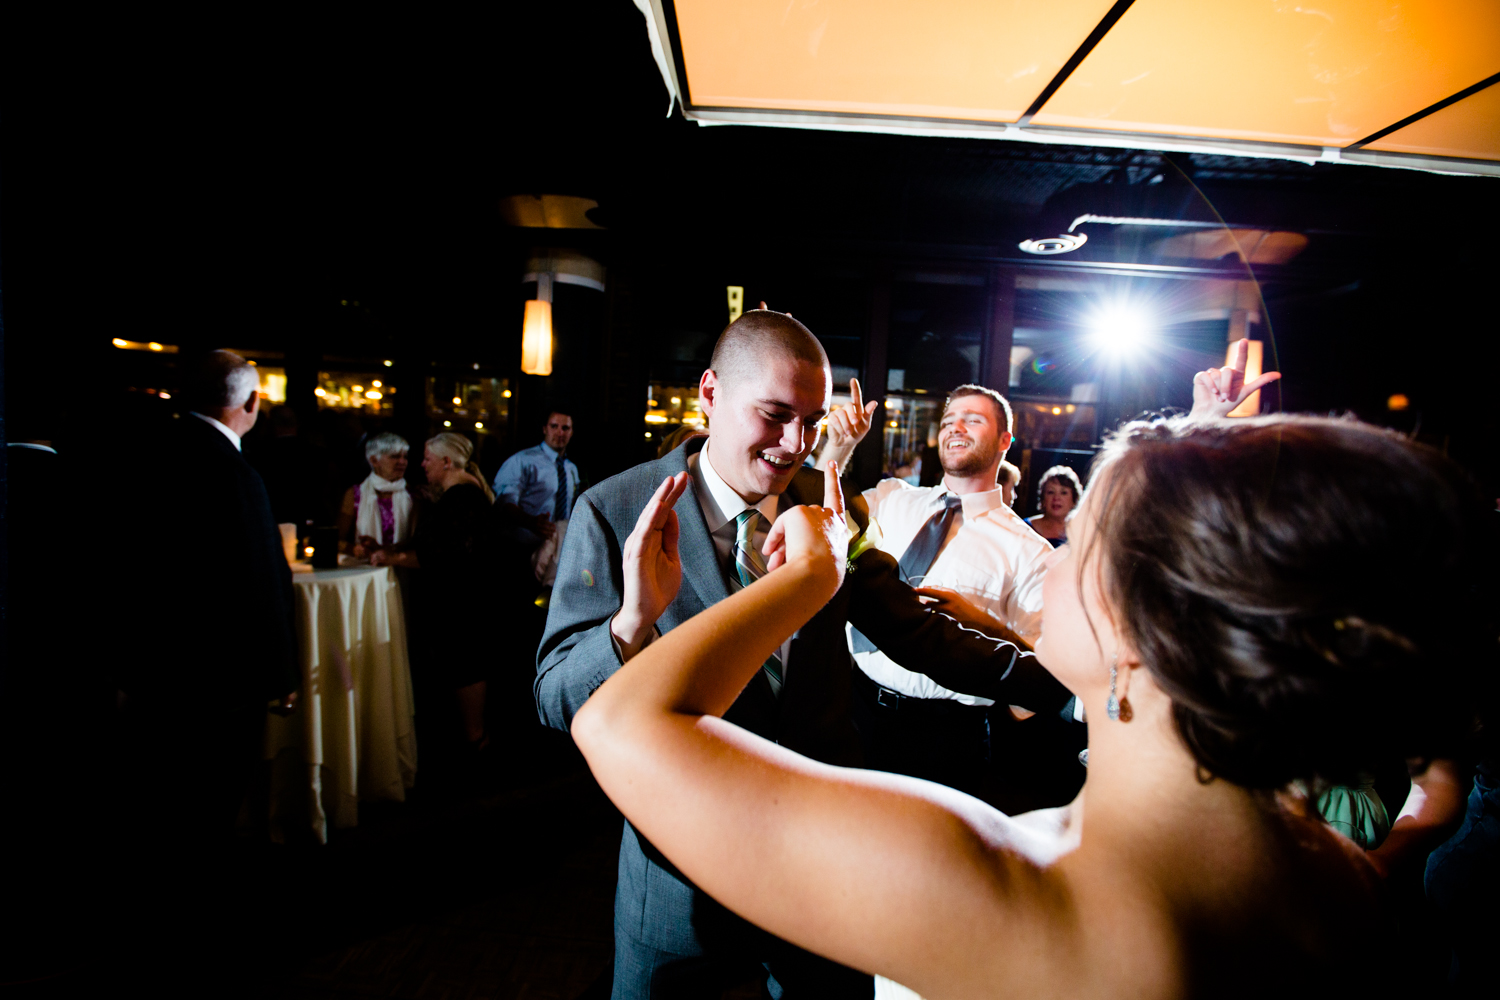 fultons_on_the_river_wedding_chicago_photographer-107.jpg